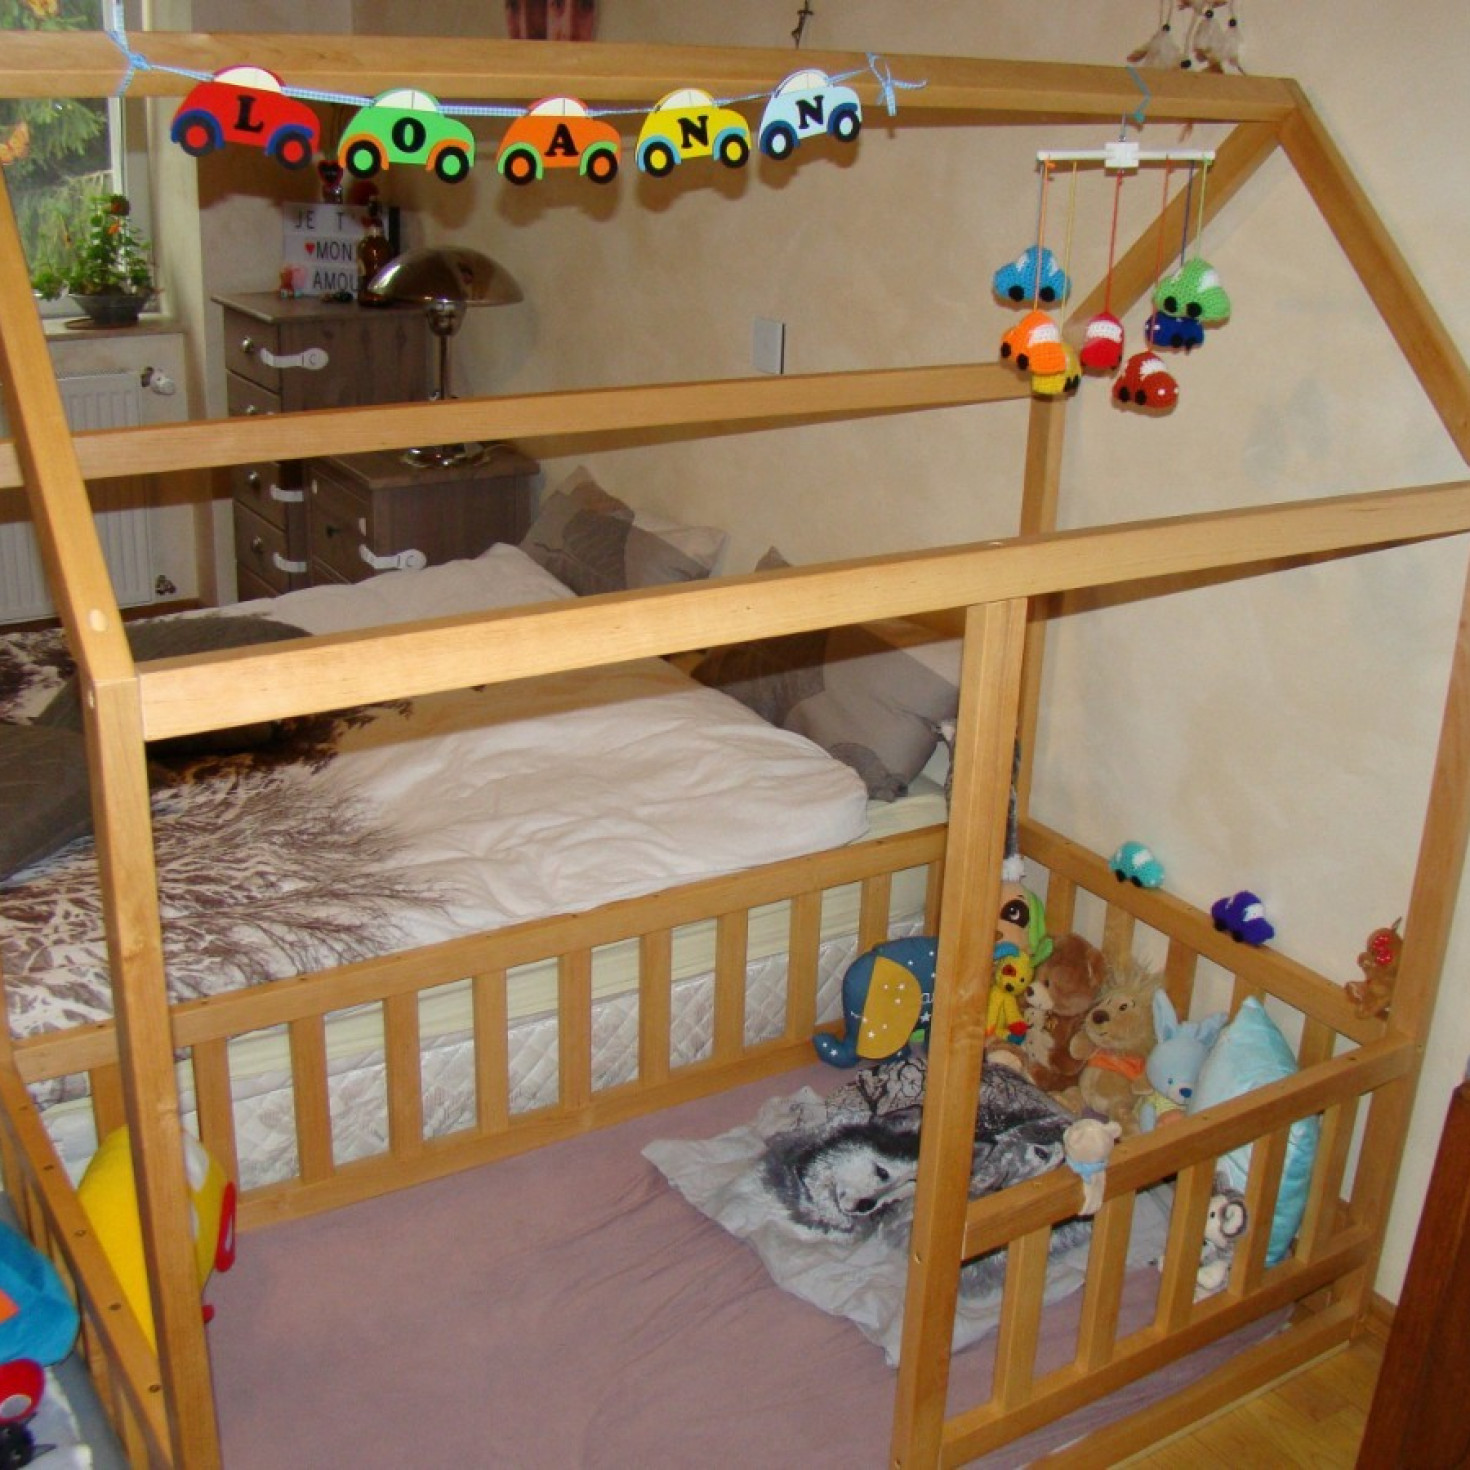 A floor house bed with toys